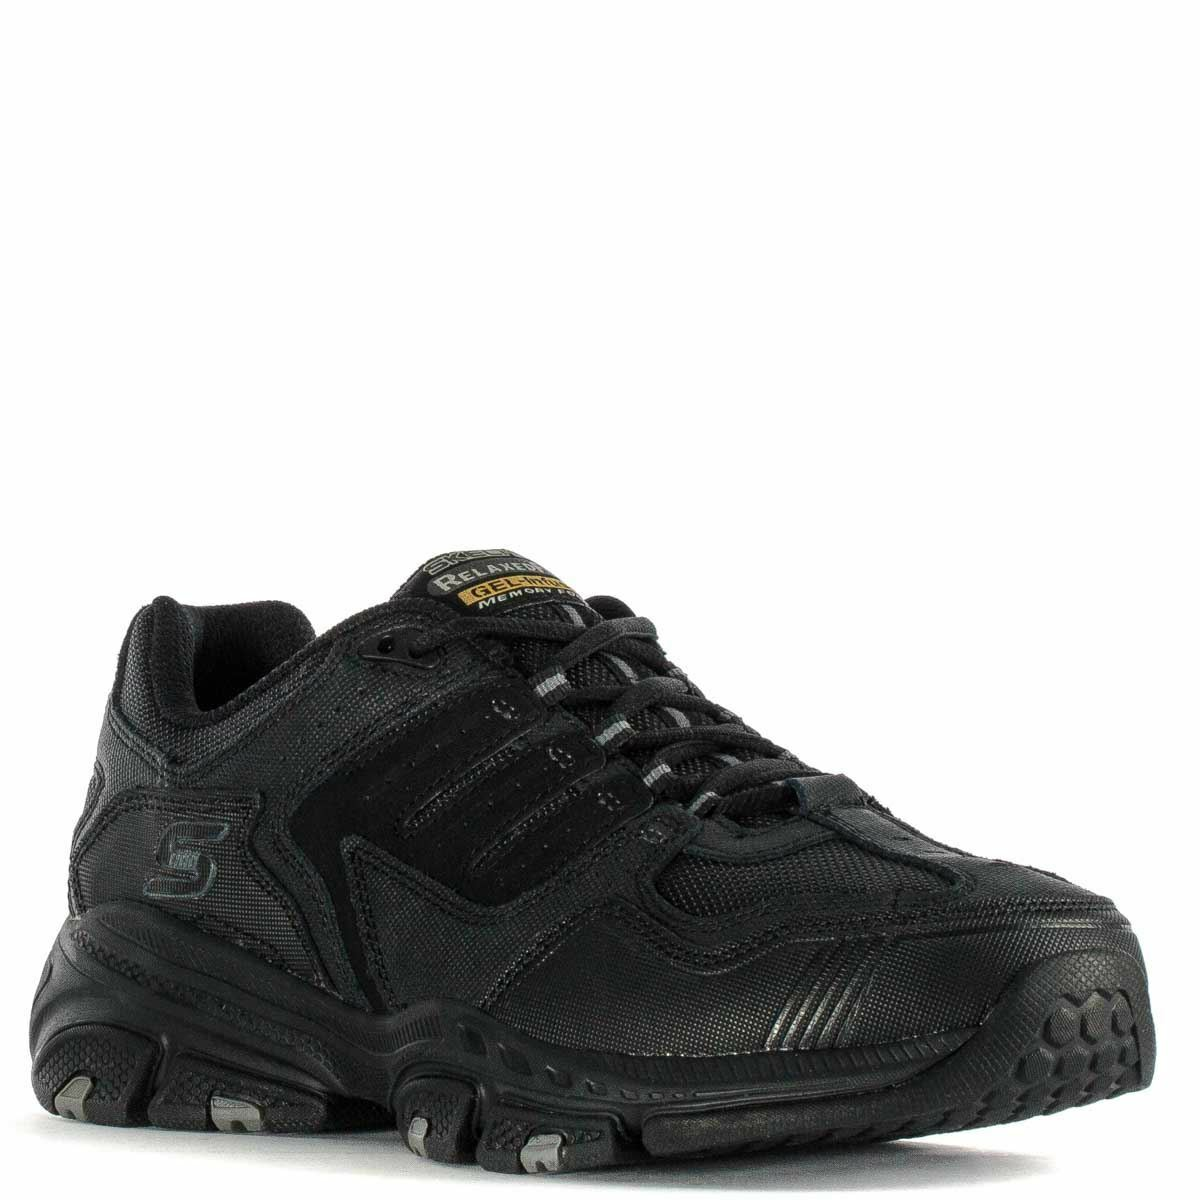 SKECHERS MEN'S SHOES RELAXED FIT CROSS COURT TR WIDE WIDTH BLACK 51270 WW BBK Cheap and beautiful fashion